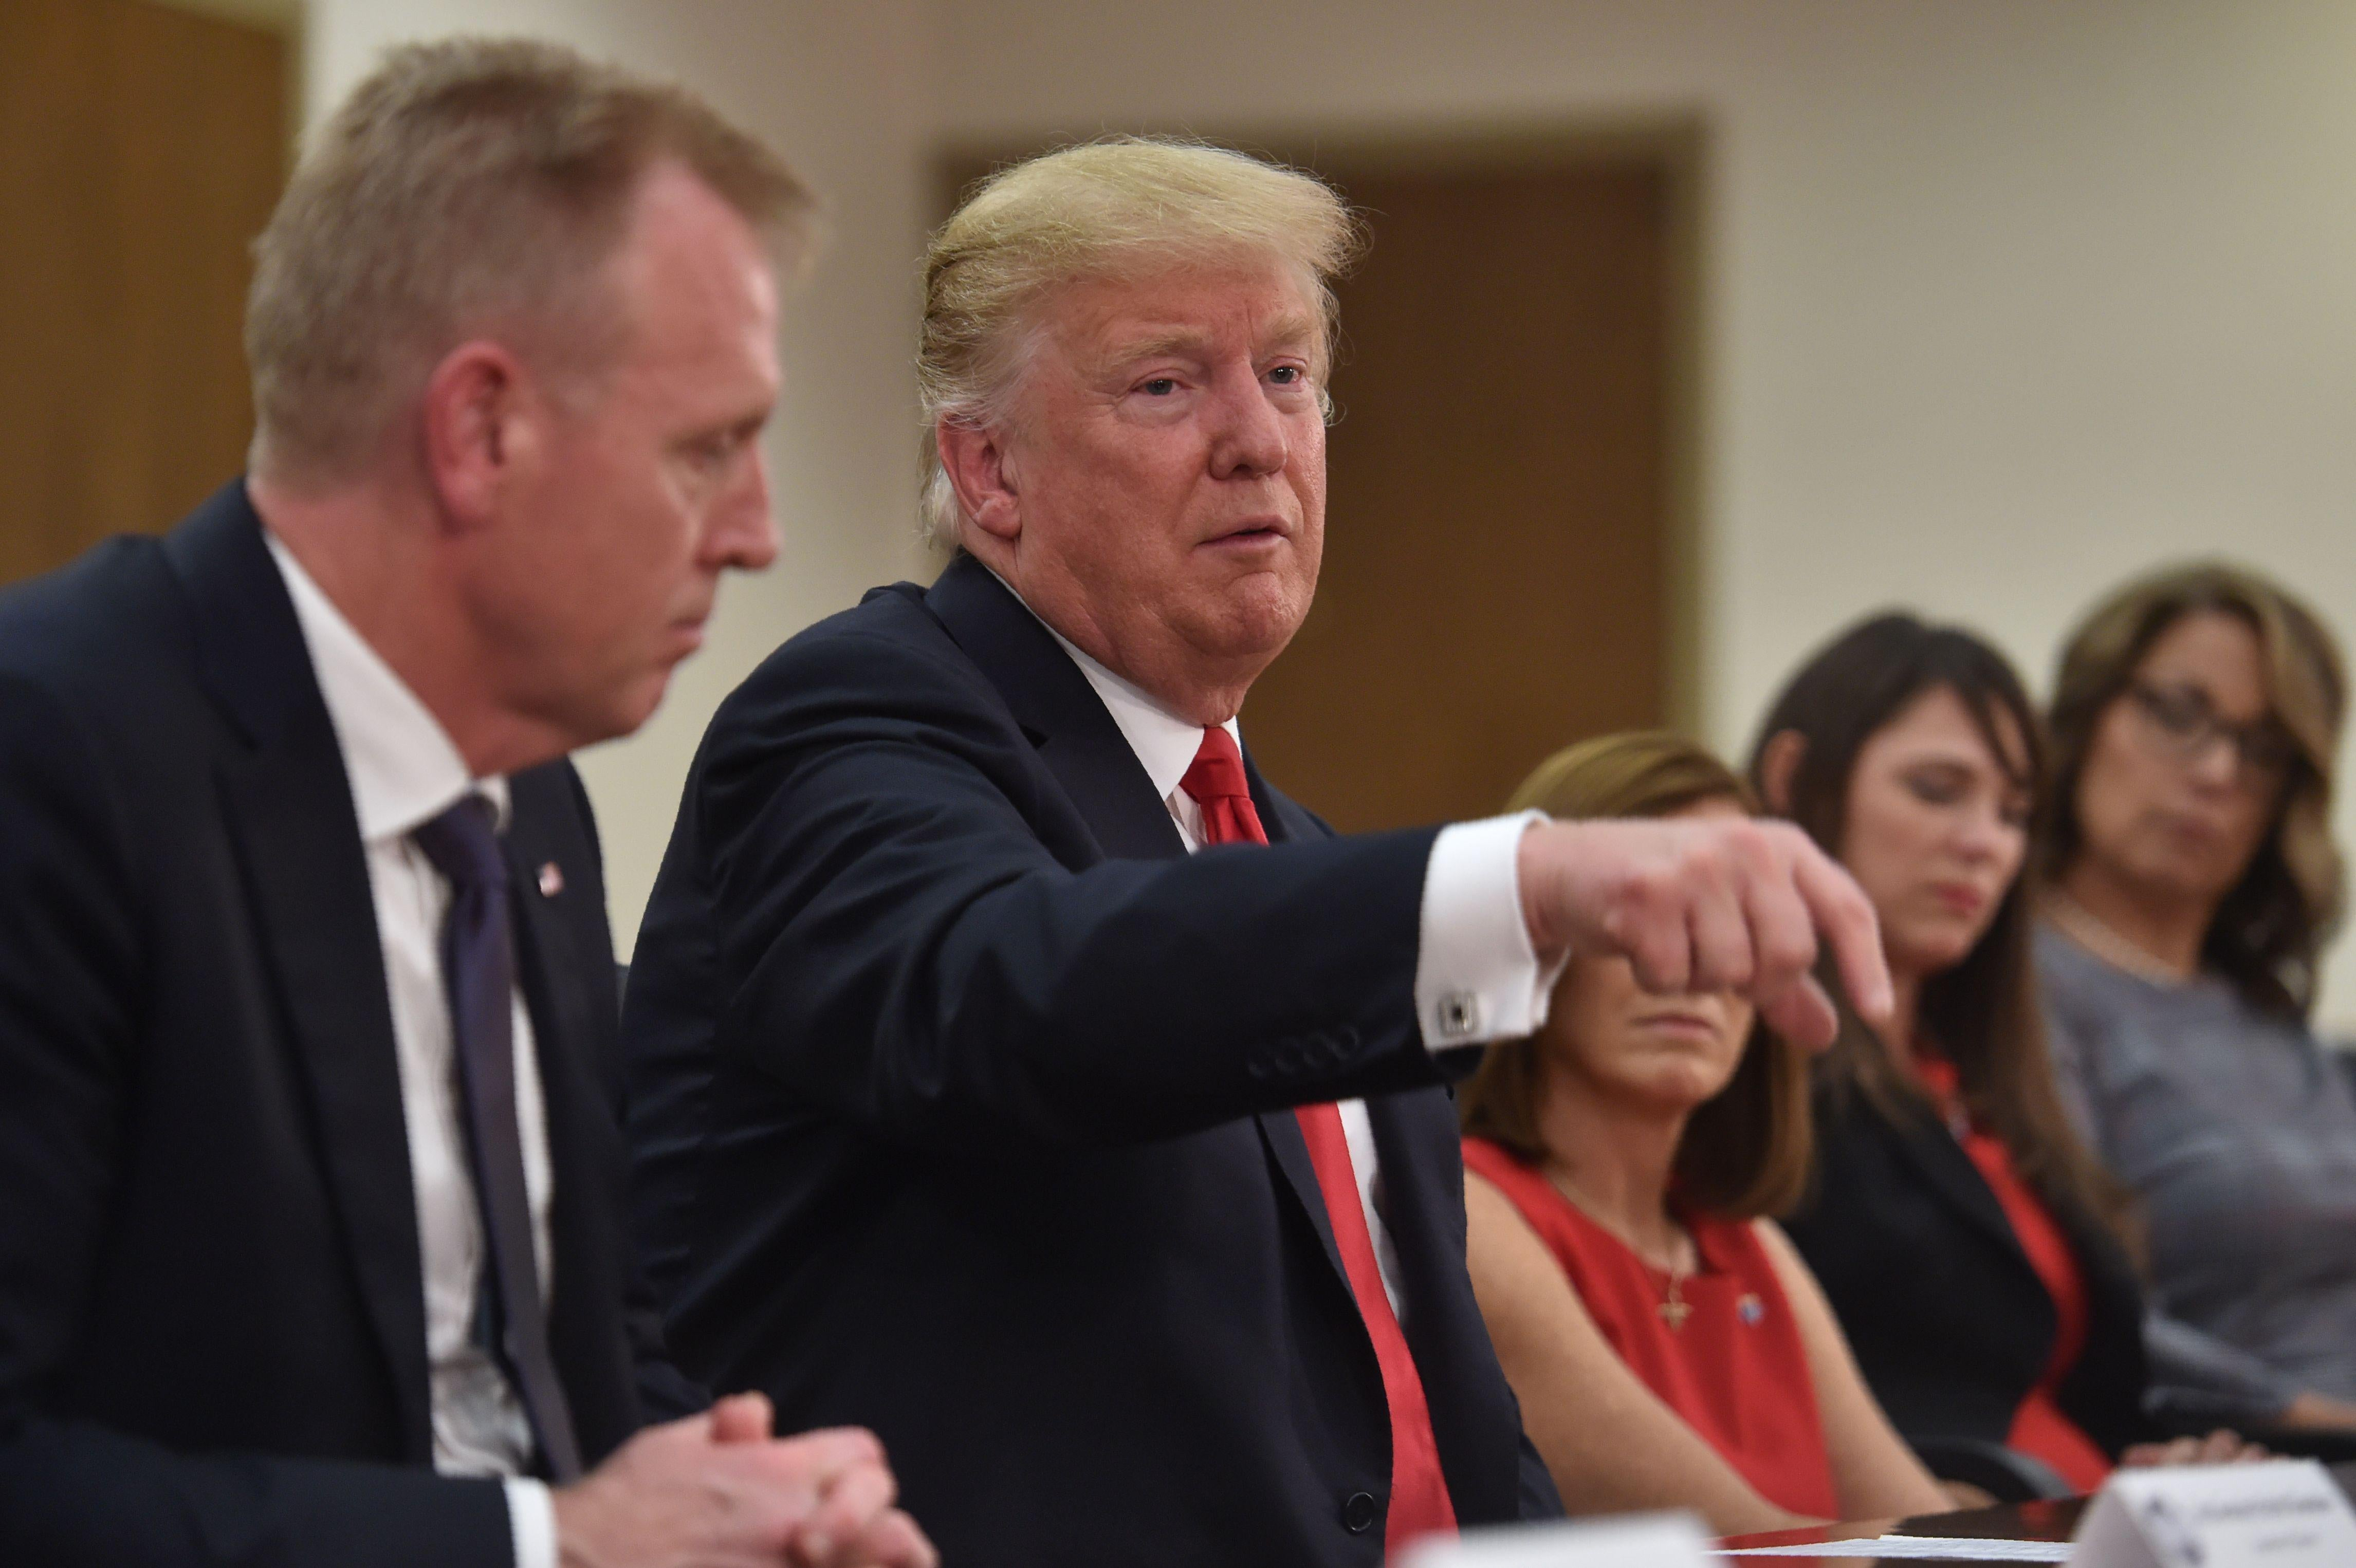 President Donald Trump speaks during a defense roundtable at Luke Air Force Base in Phoenix , Arizona on October 19, 2018.